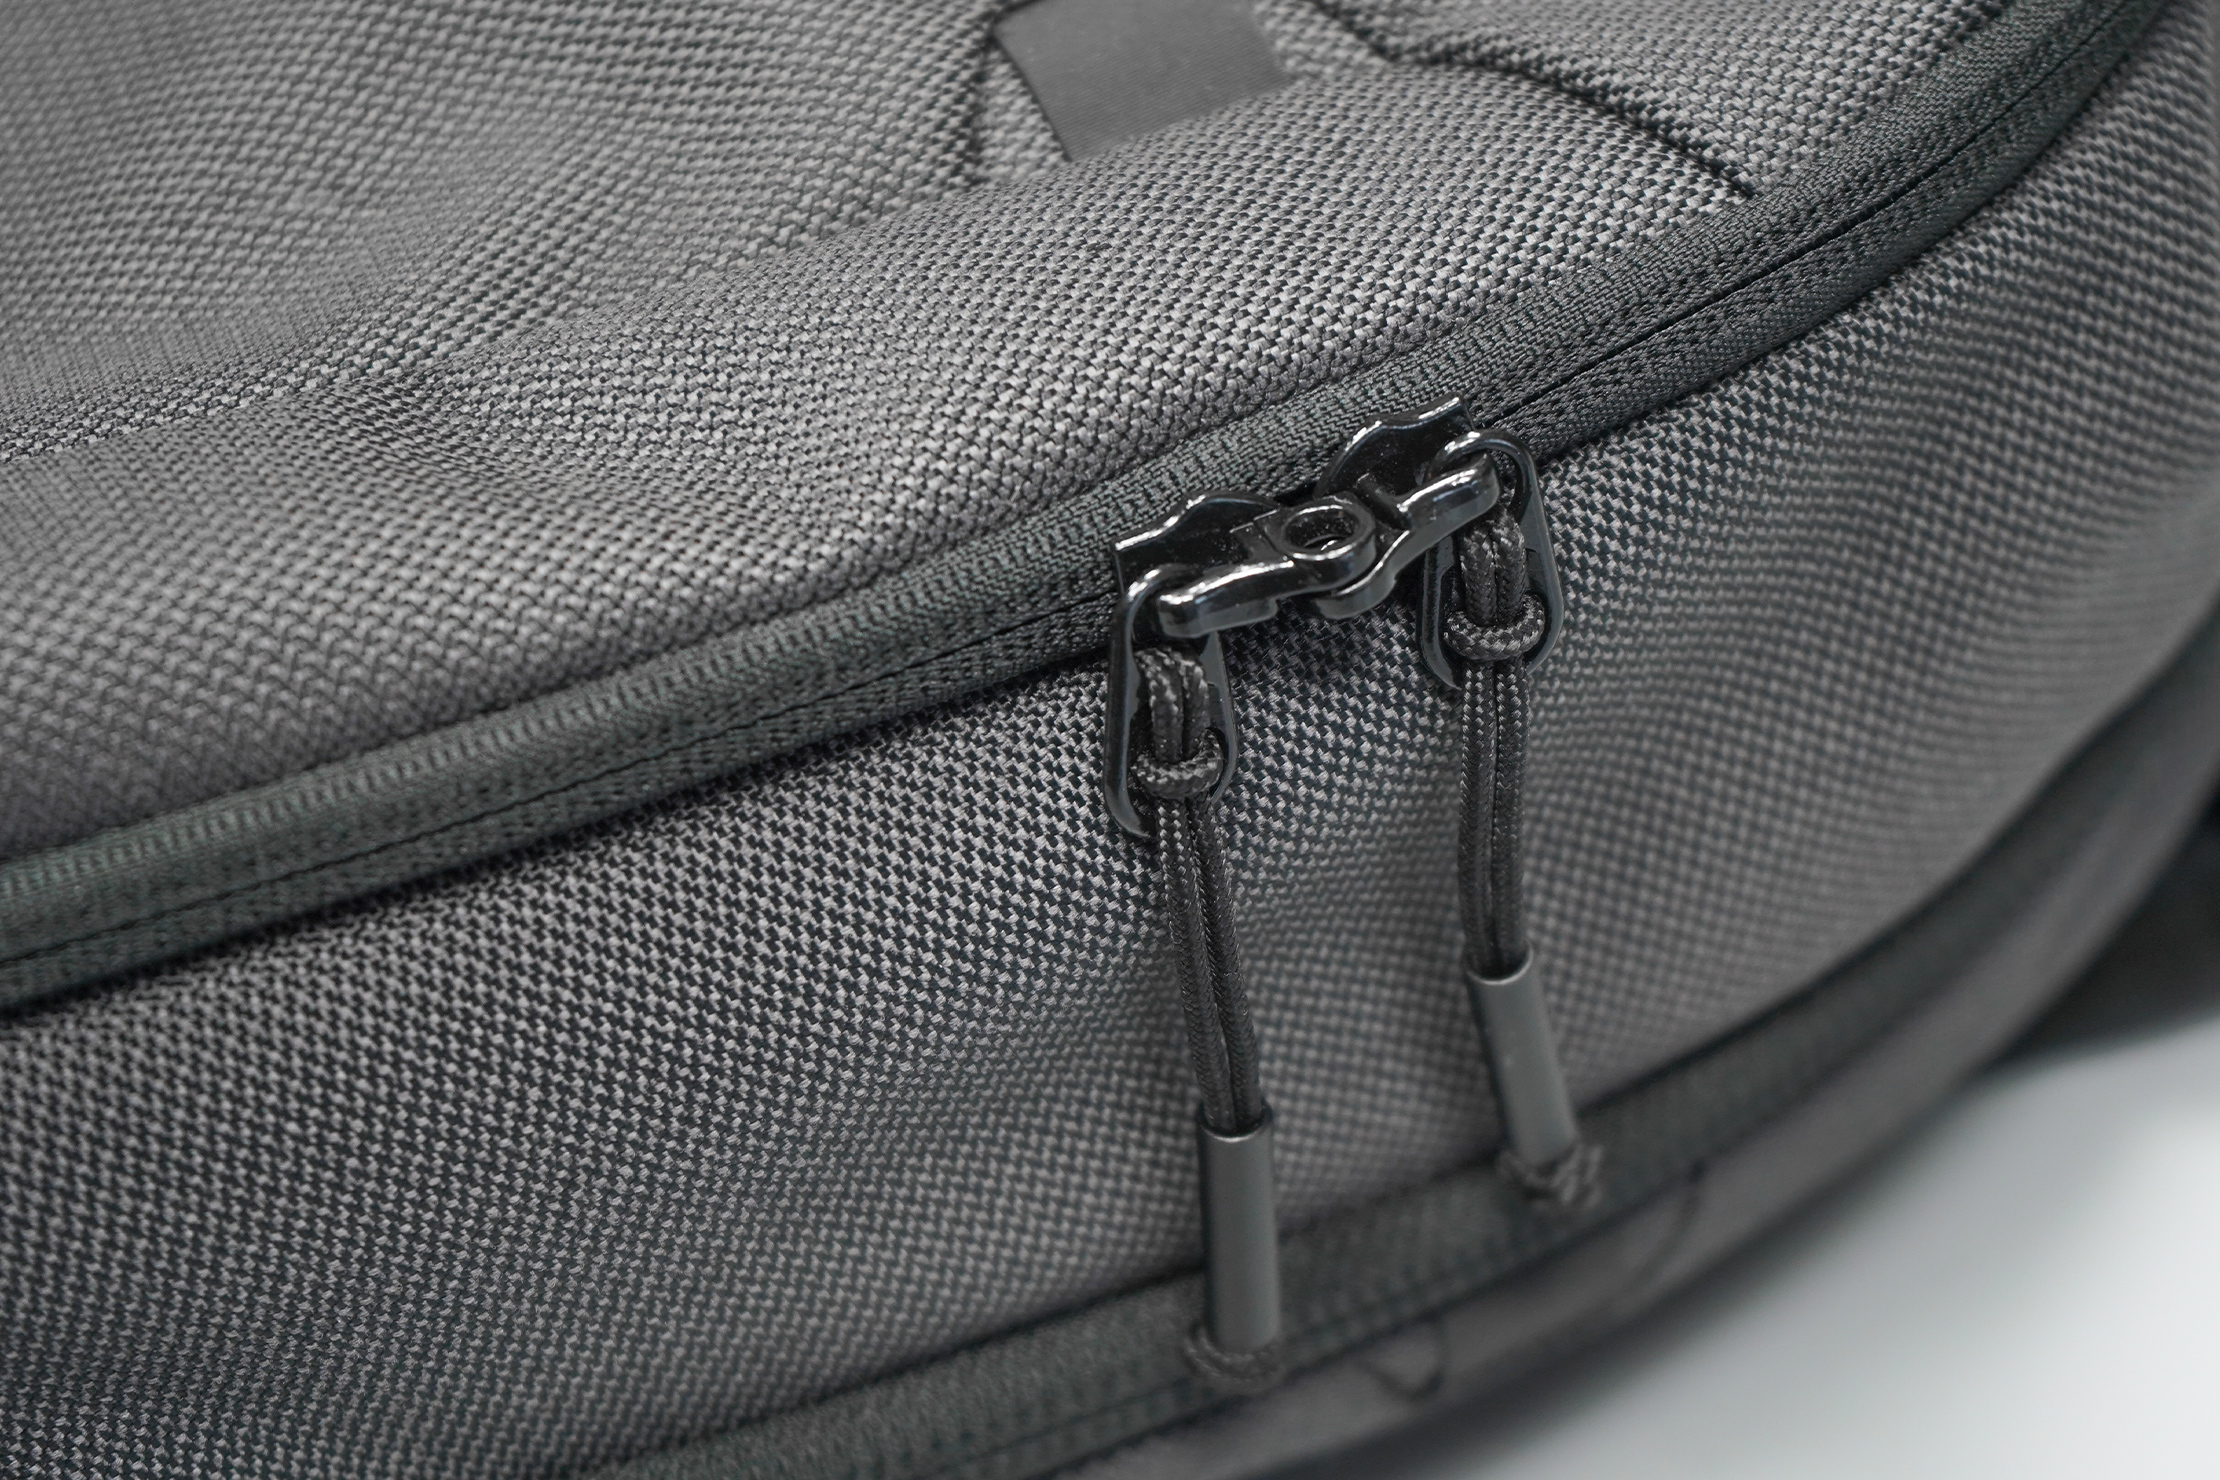 Heimplanet Travel Pack 34L V2 Zippers